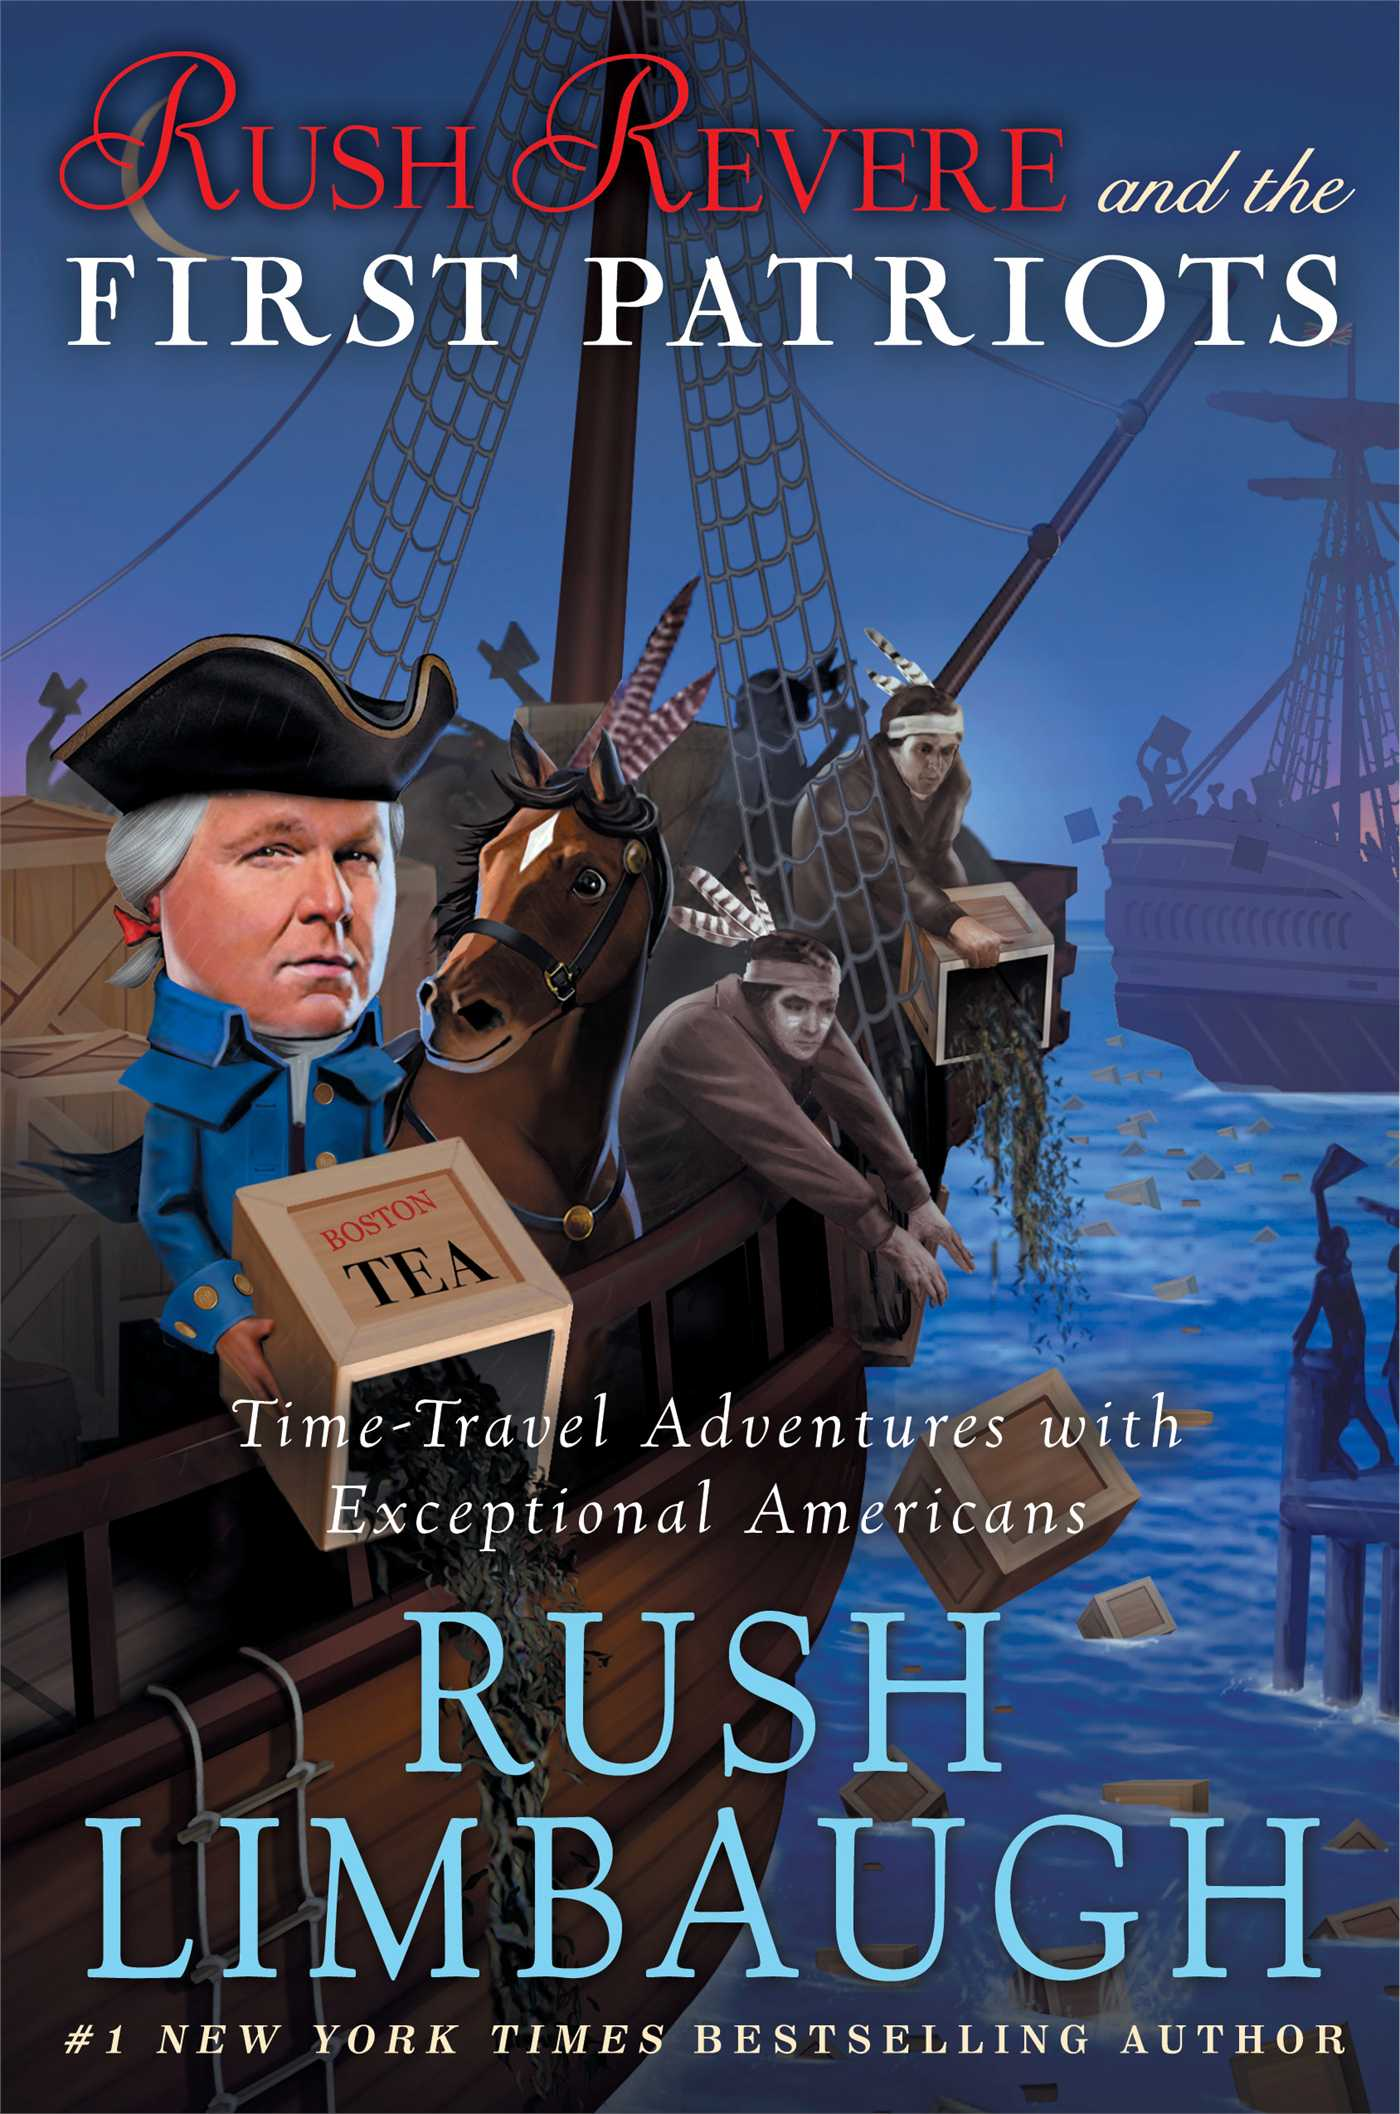 Rush-revere-and-the-first-patriots-9781476755922_hr